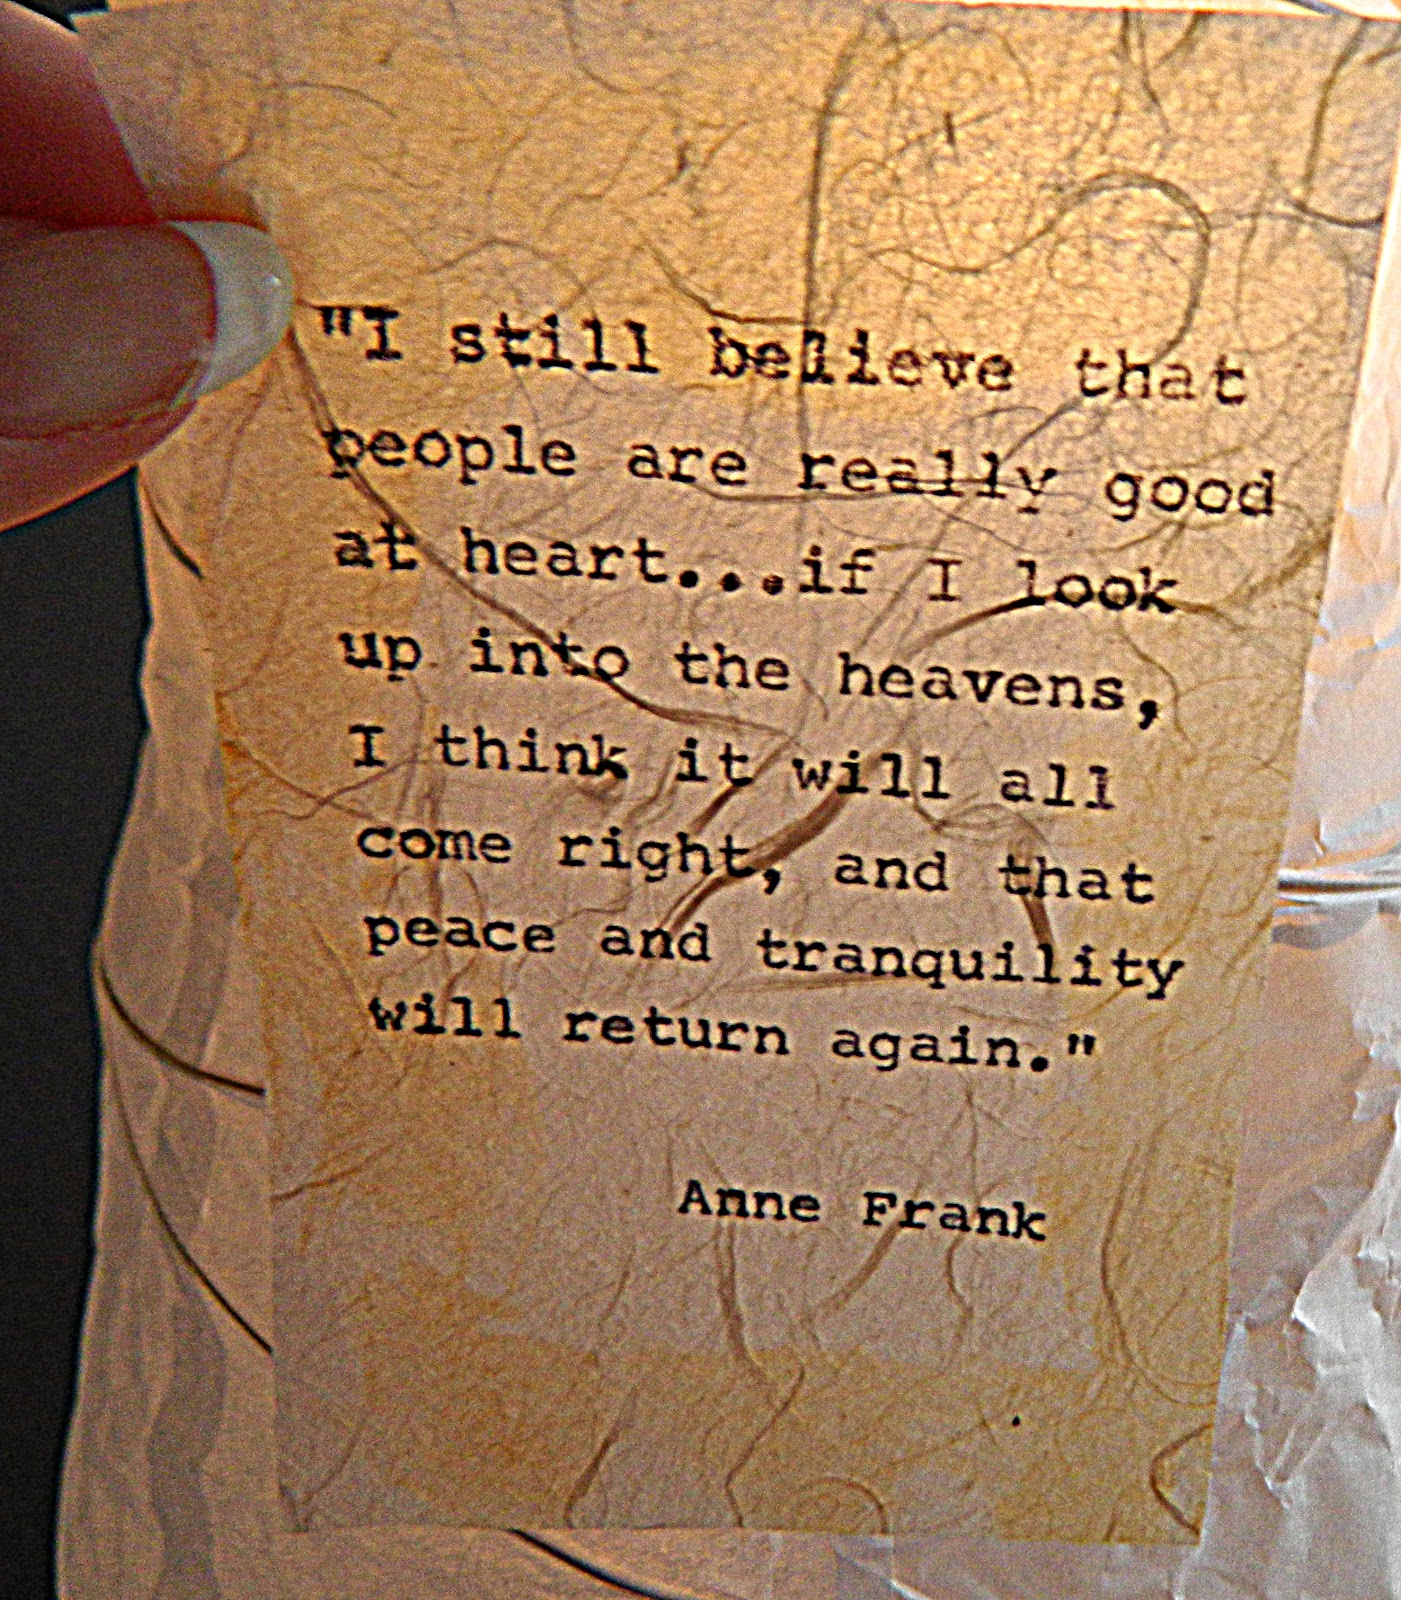 research essay on anne frank